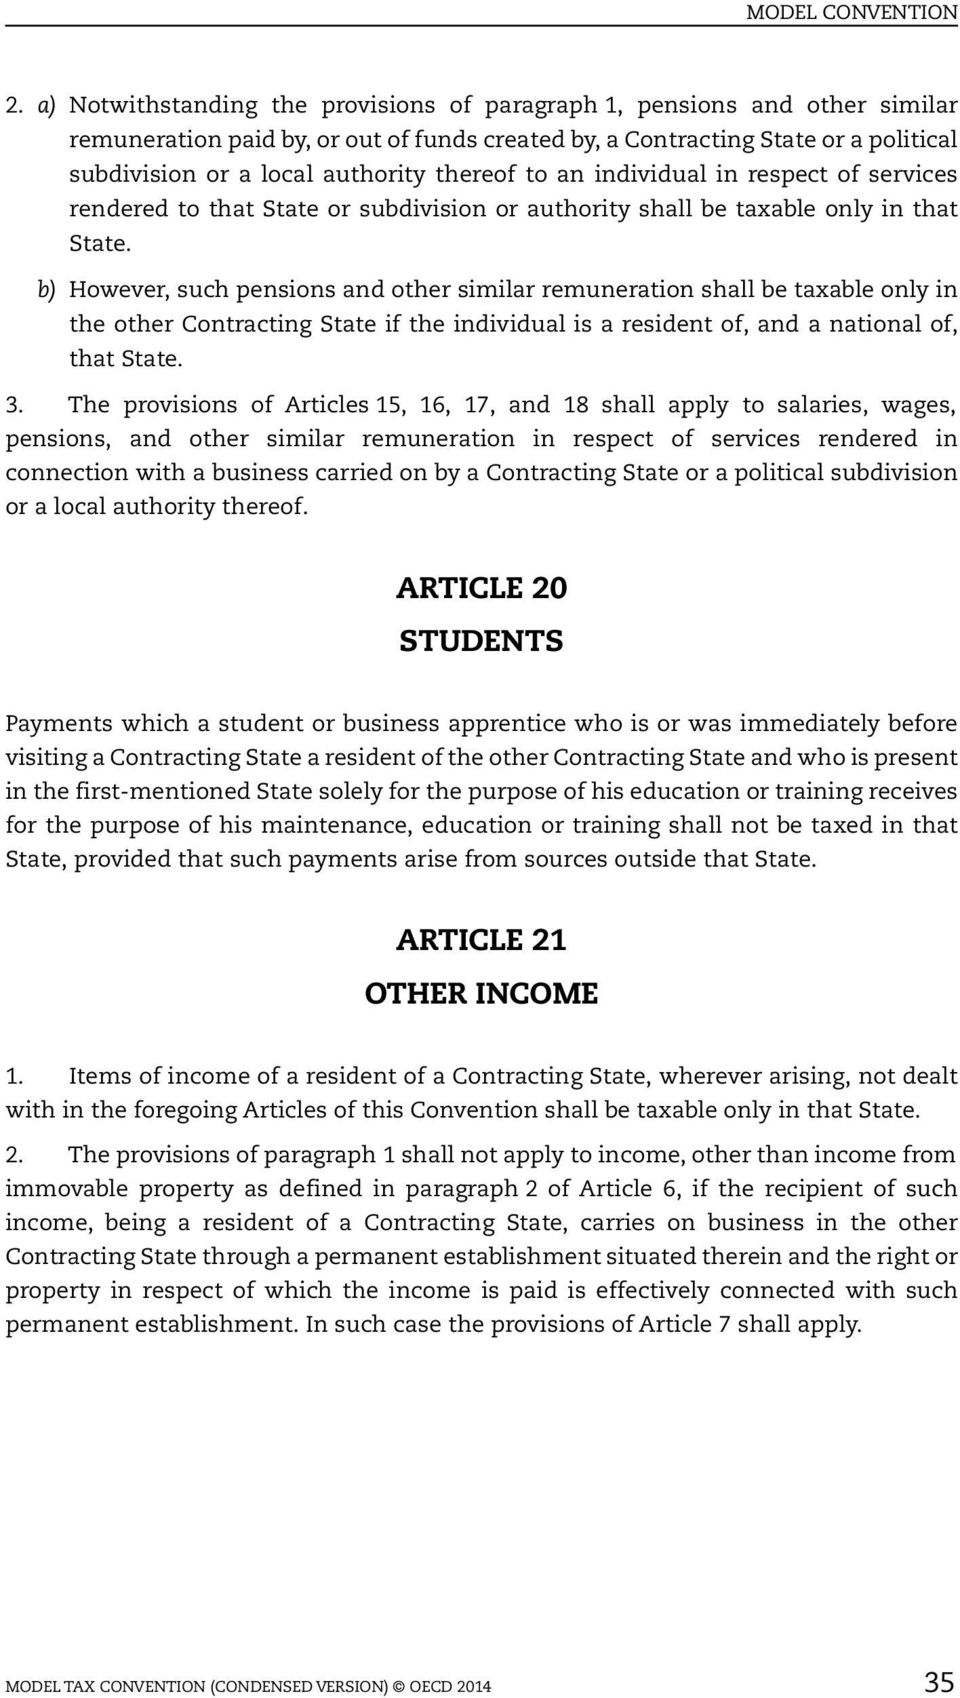 b) However, such pensions and other similar remuneration shall be taxable only in the other Contracting State if the individual is a resident of, and a national of, that State. 3.